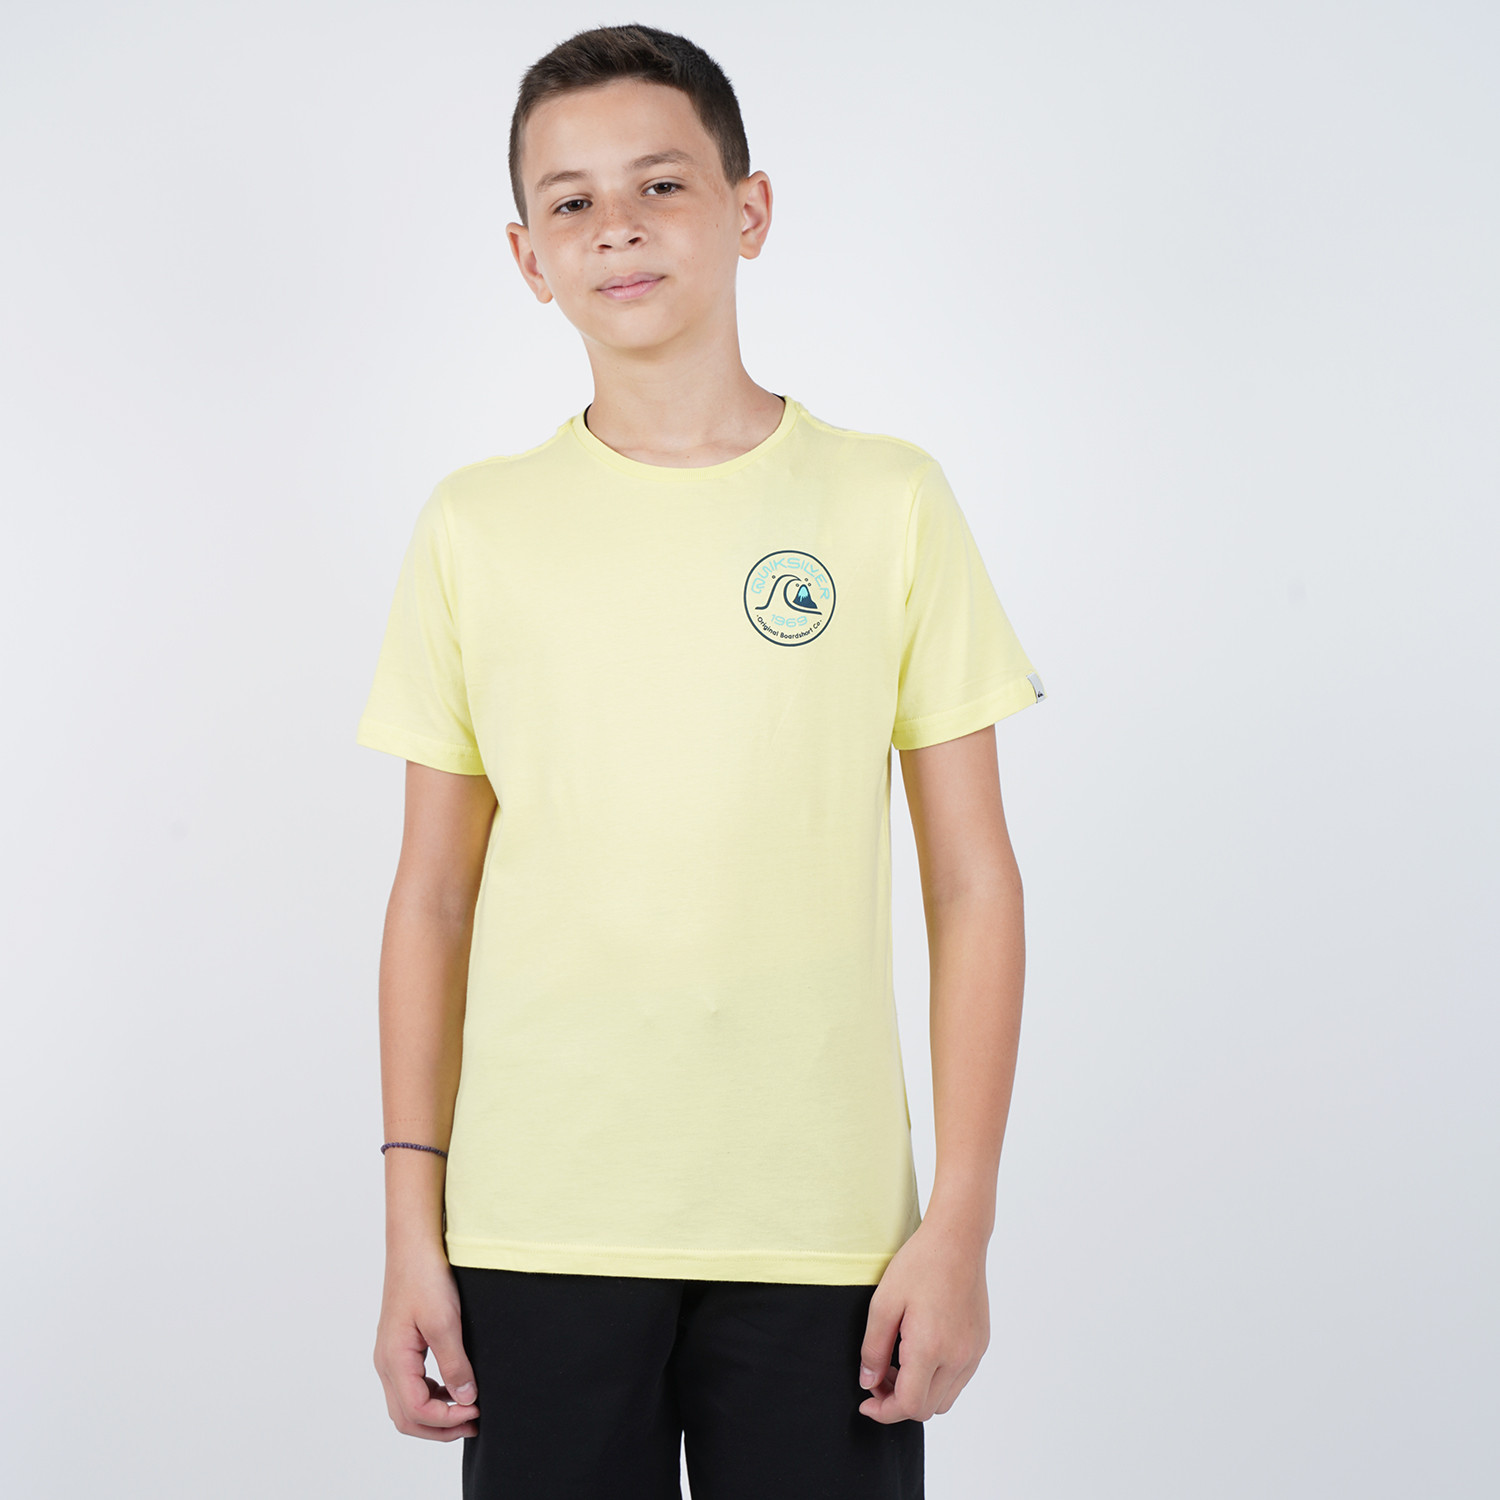 Quiksilver Close Call Kids' Tee (9000050418_44929)